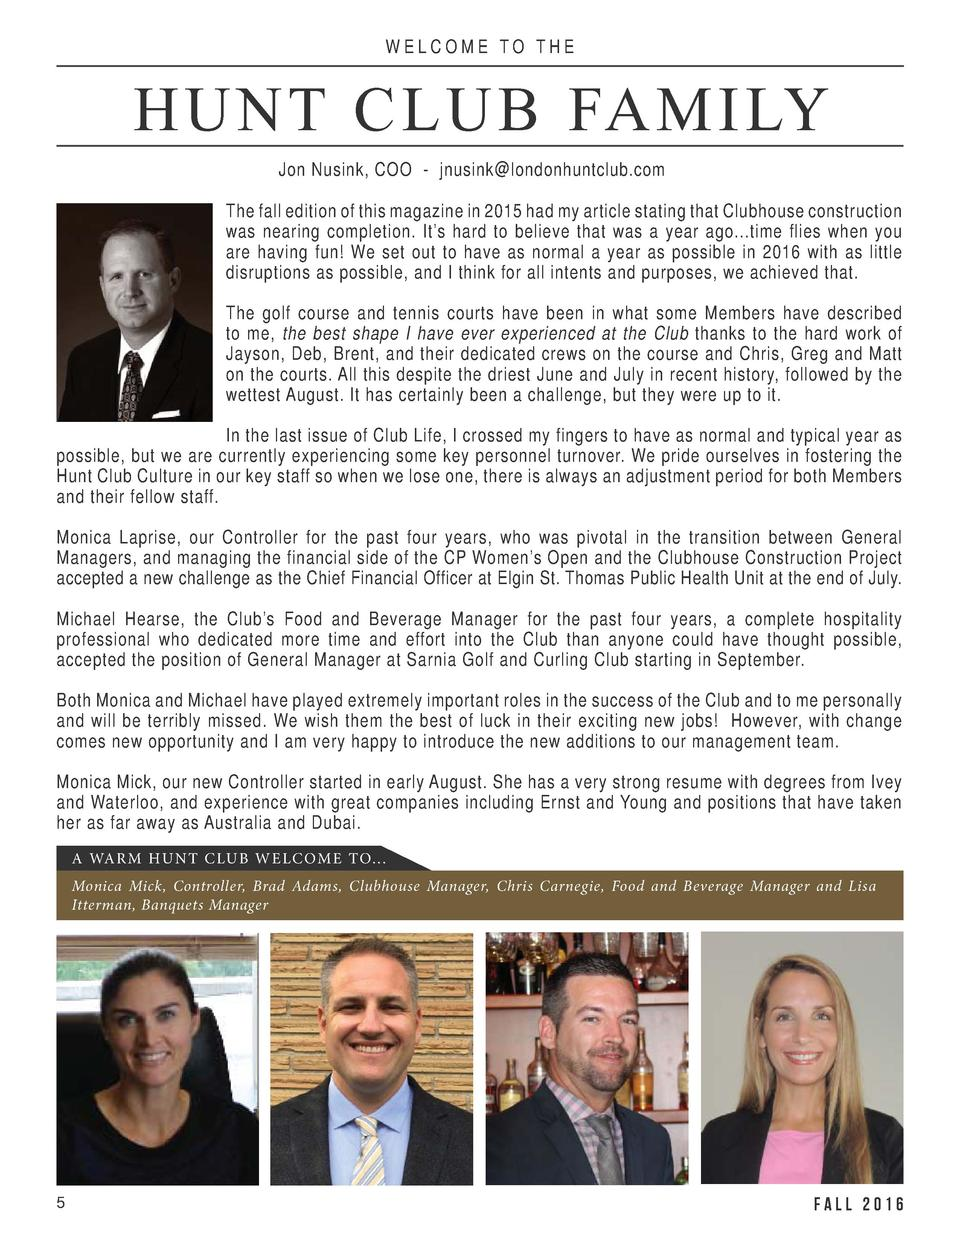 WELCOME TO THE  HUNT CLUB FAMILY Jon Nusink, COO - jnusink londonhuntclub.com The fall edition of this magazine in 2015 ha...